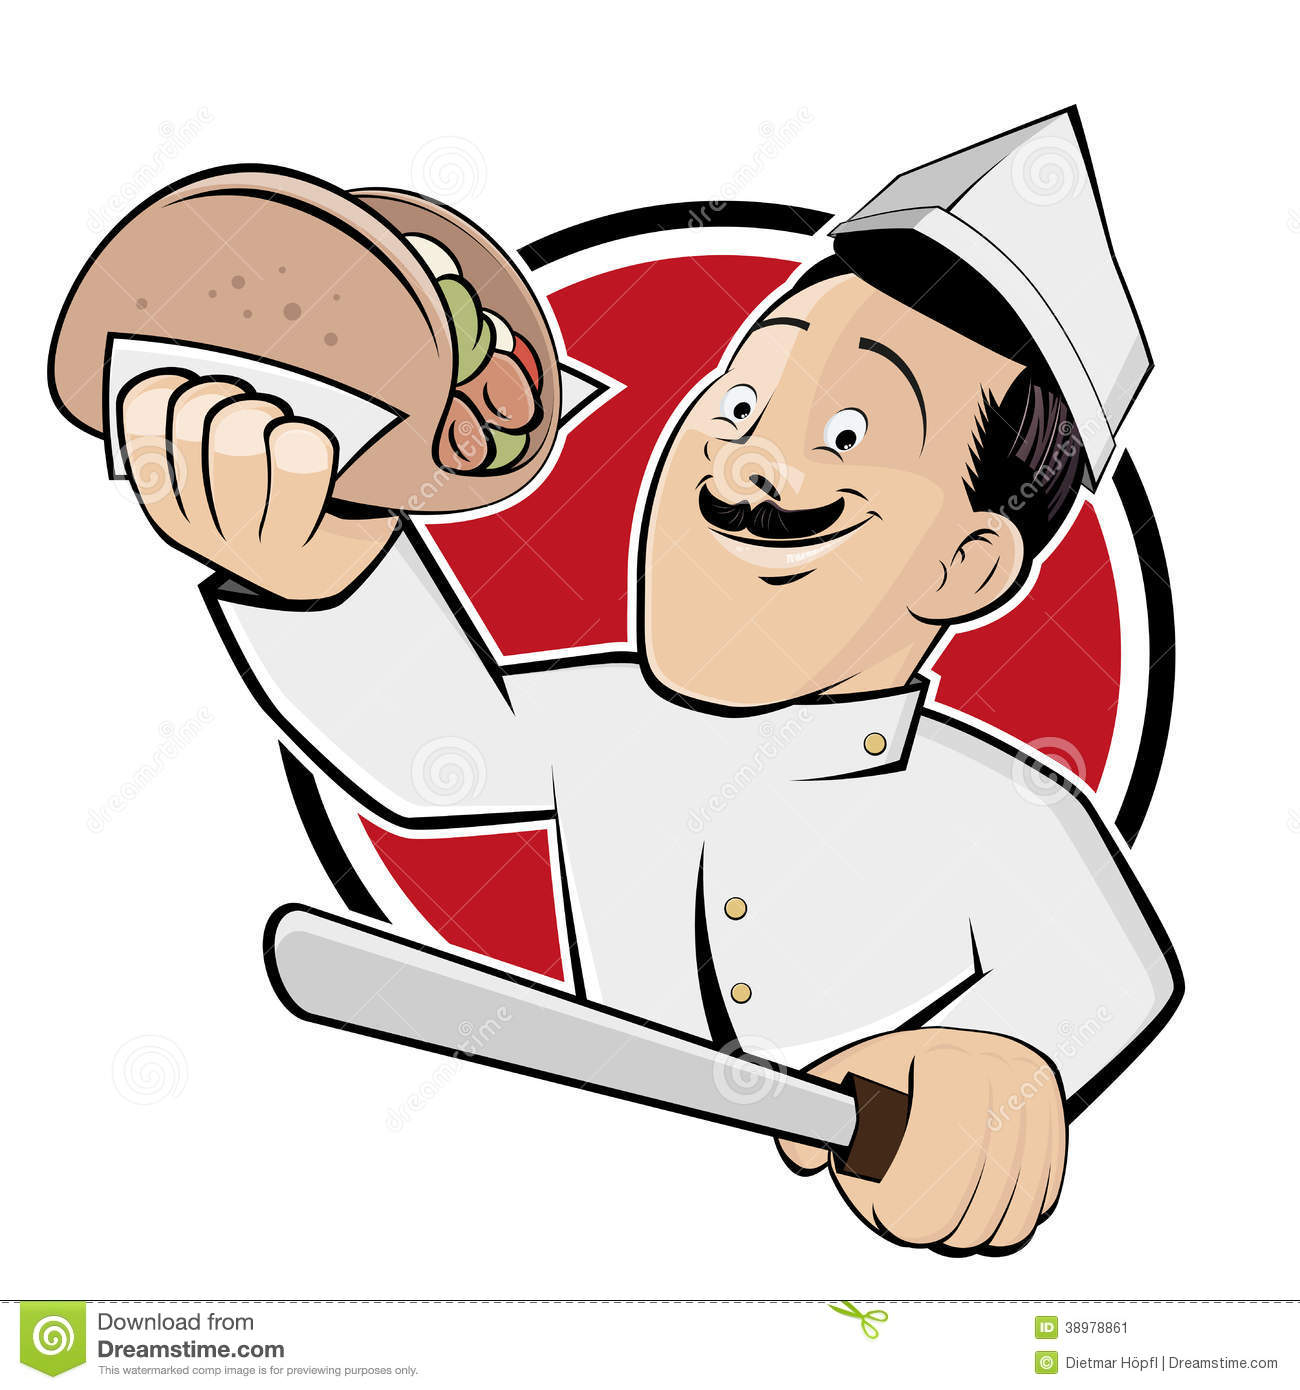 Funny Doner Cartoon In A Badge Stock Vector - Illustration of knife